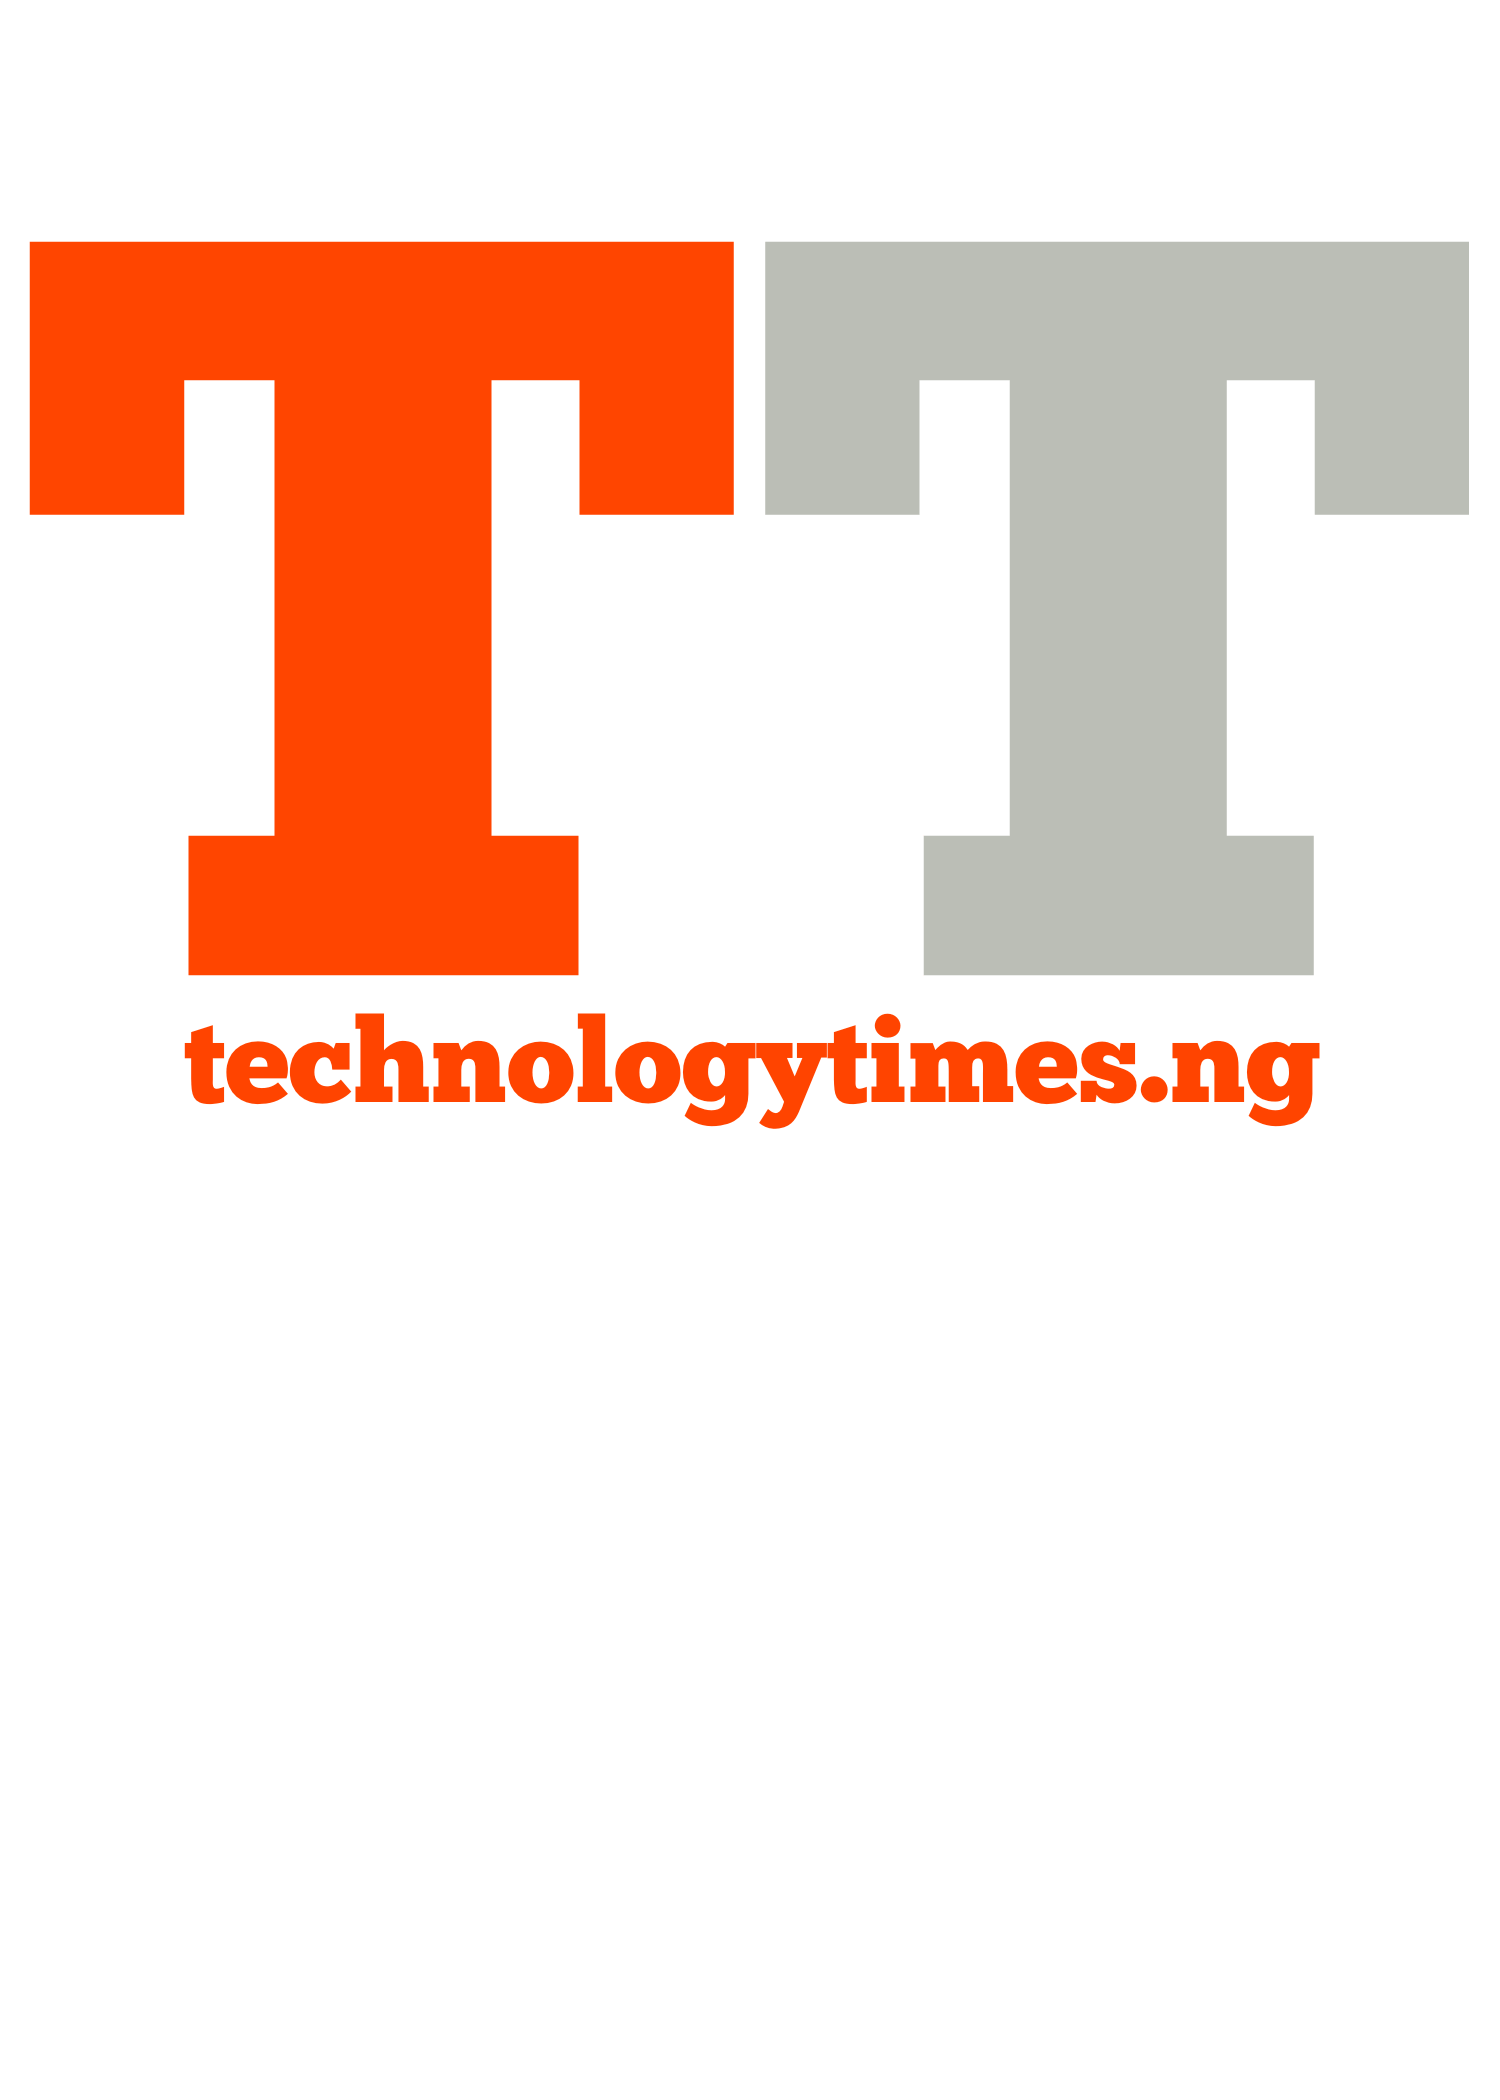 Technology Times Favicon